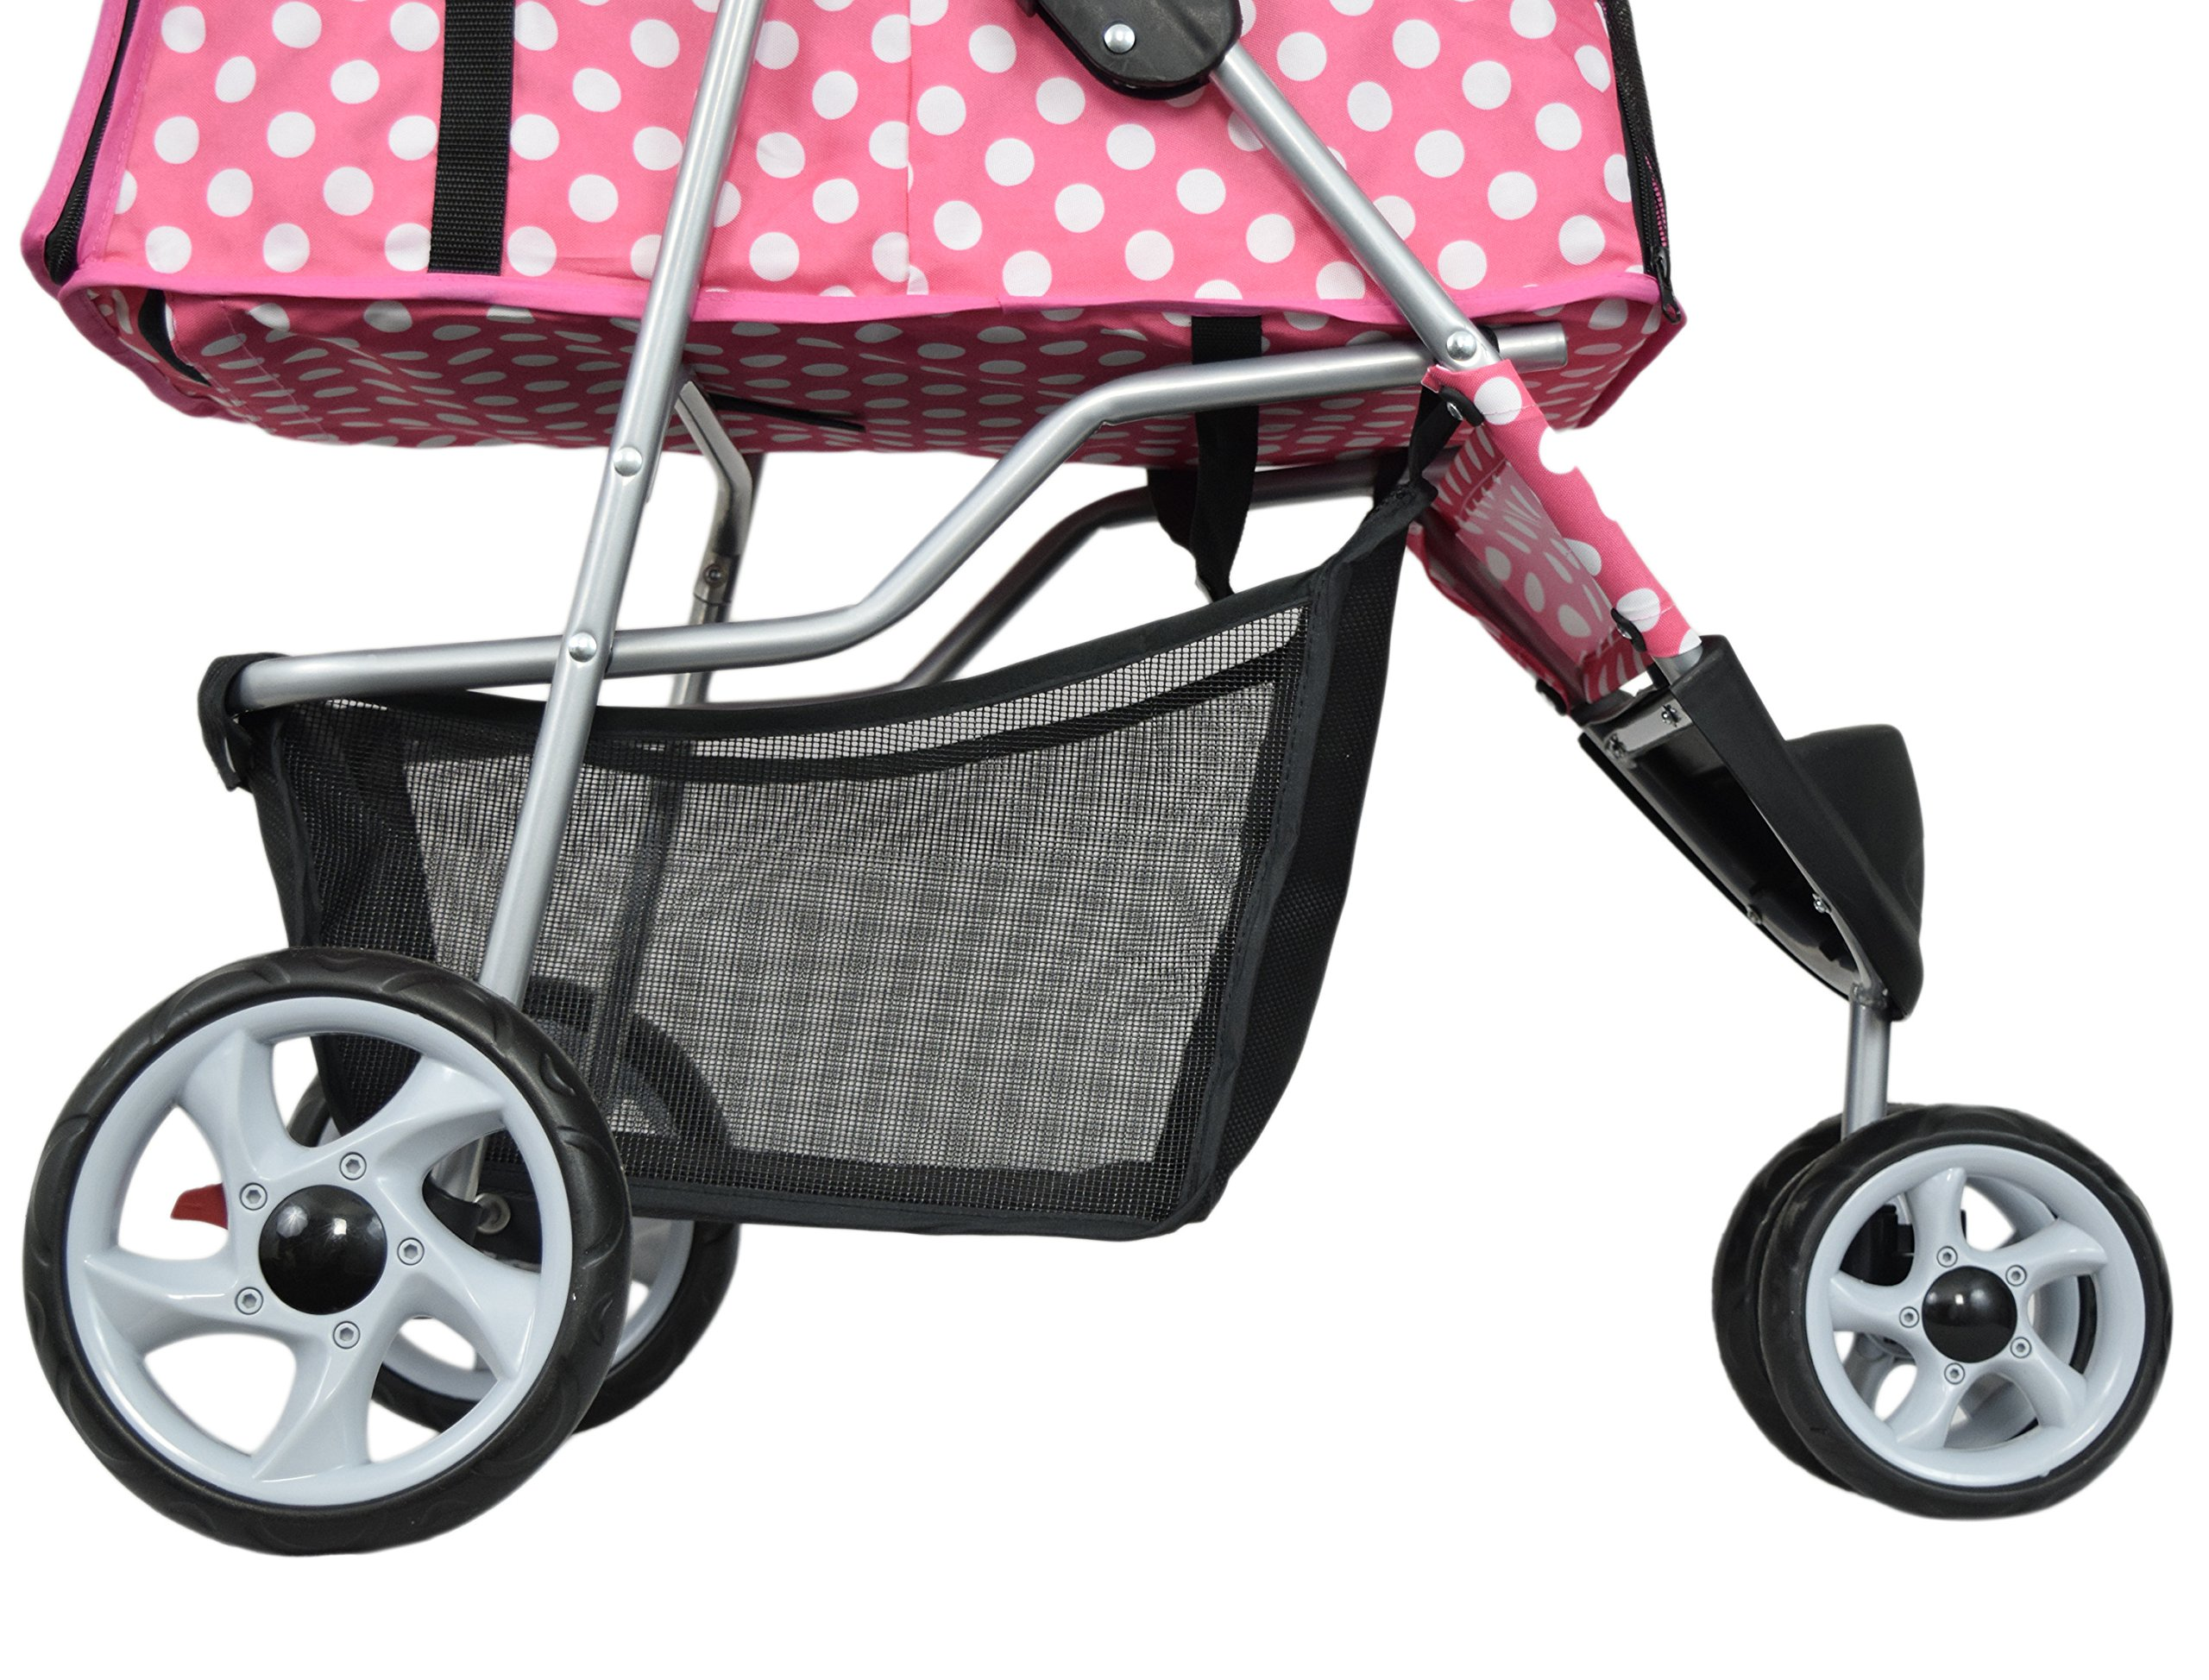 VIVO Three Wheel Pet Stroller, for Cat, Dog and More, Foldable Carrier Strolling Cart, Multiple Colors (Pink & White Polka Dot) by VIVO (Image #5)